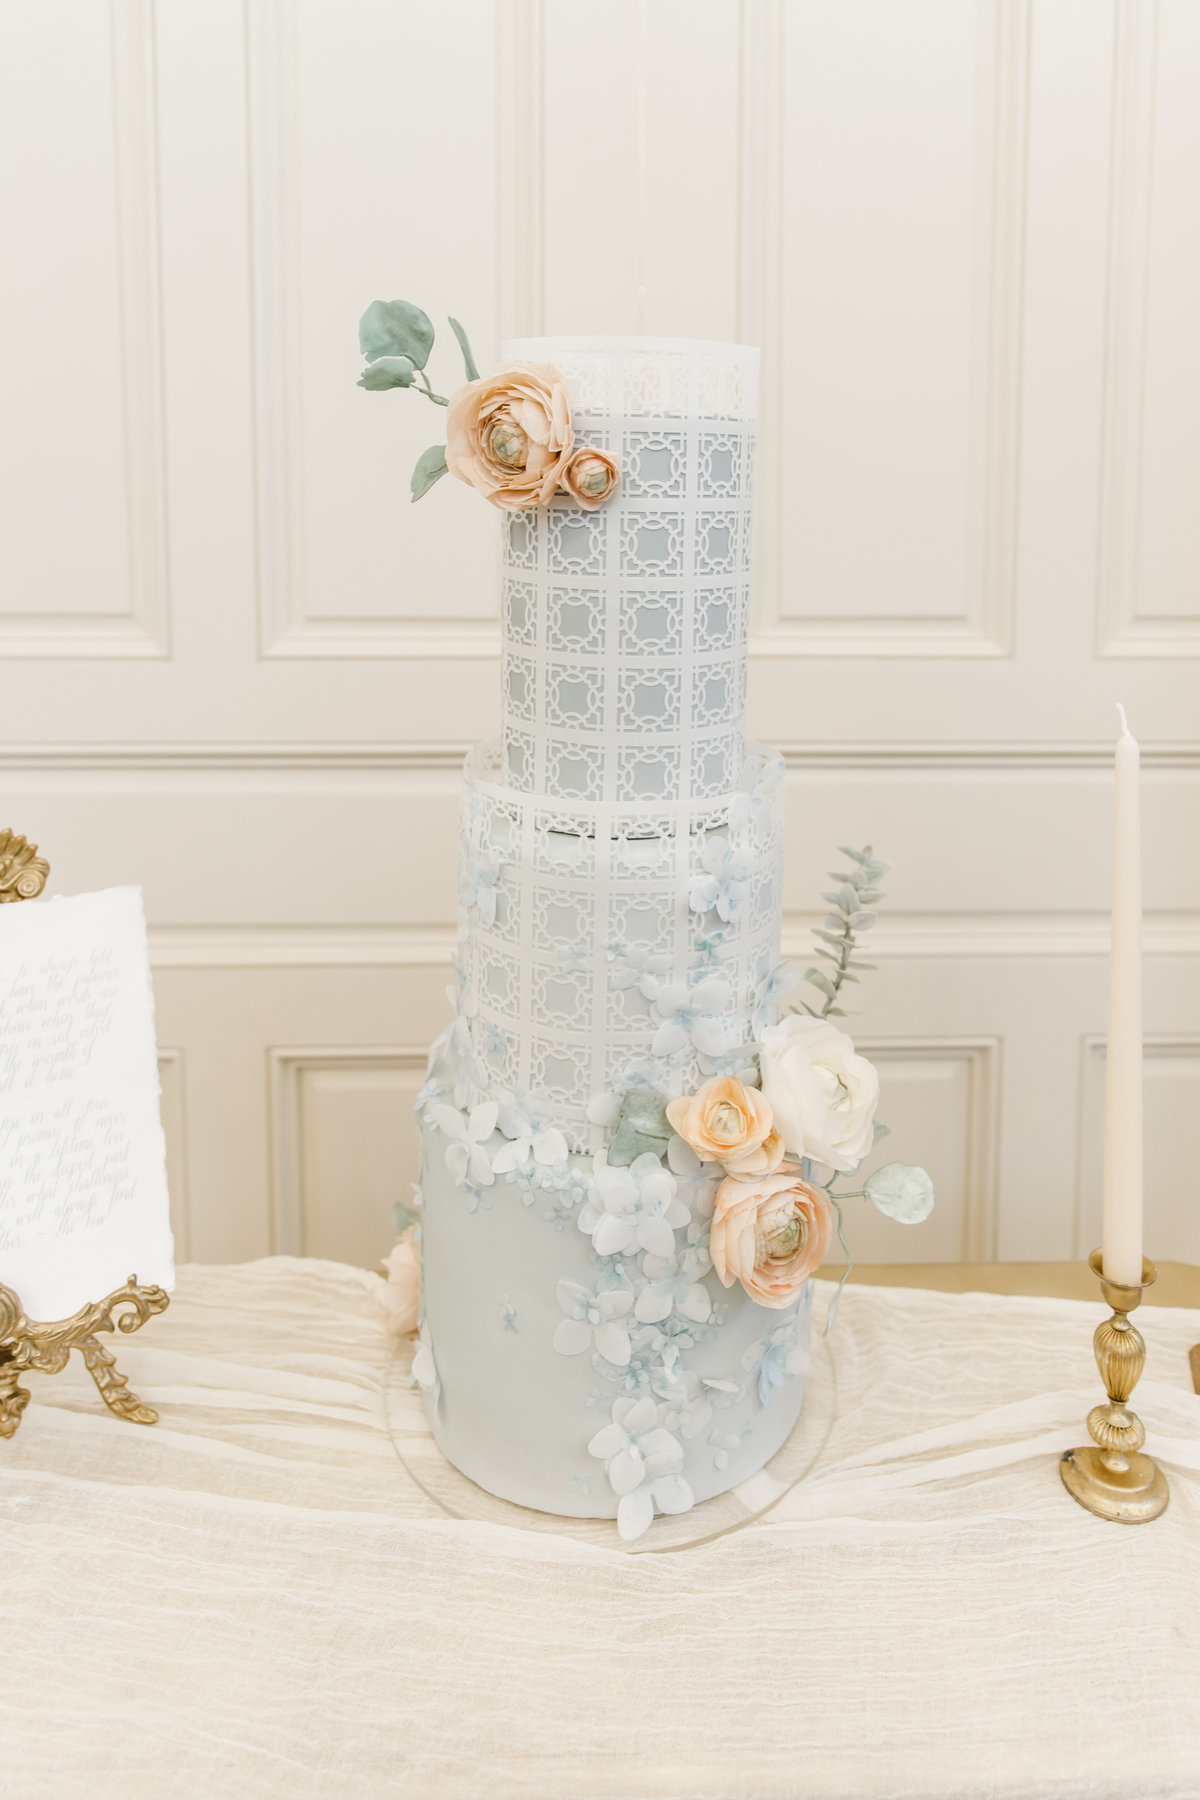 Light Blue 3 tier cake with white flowers at The Olana